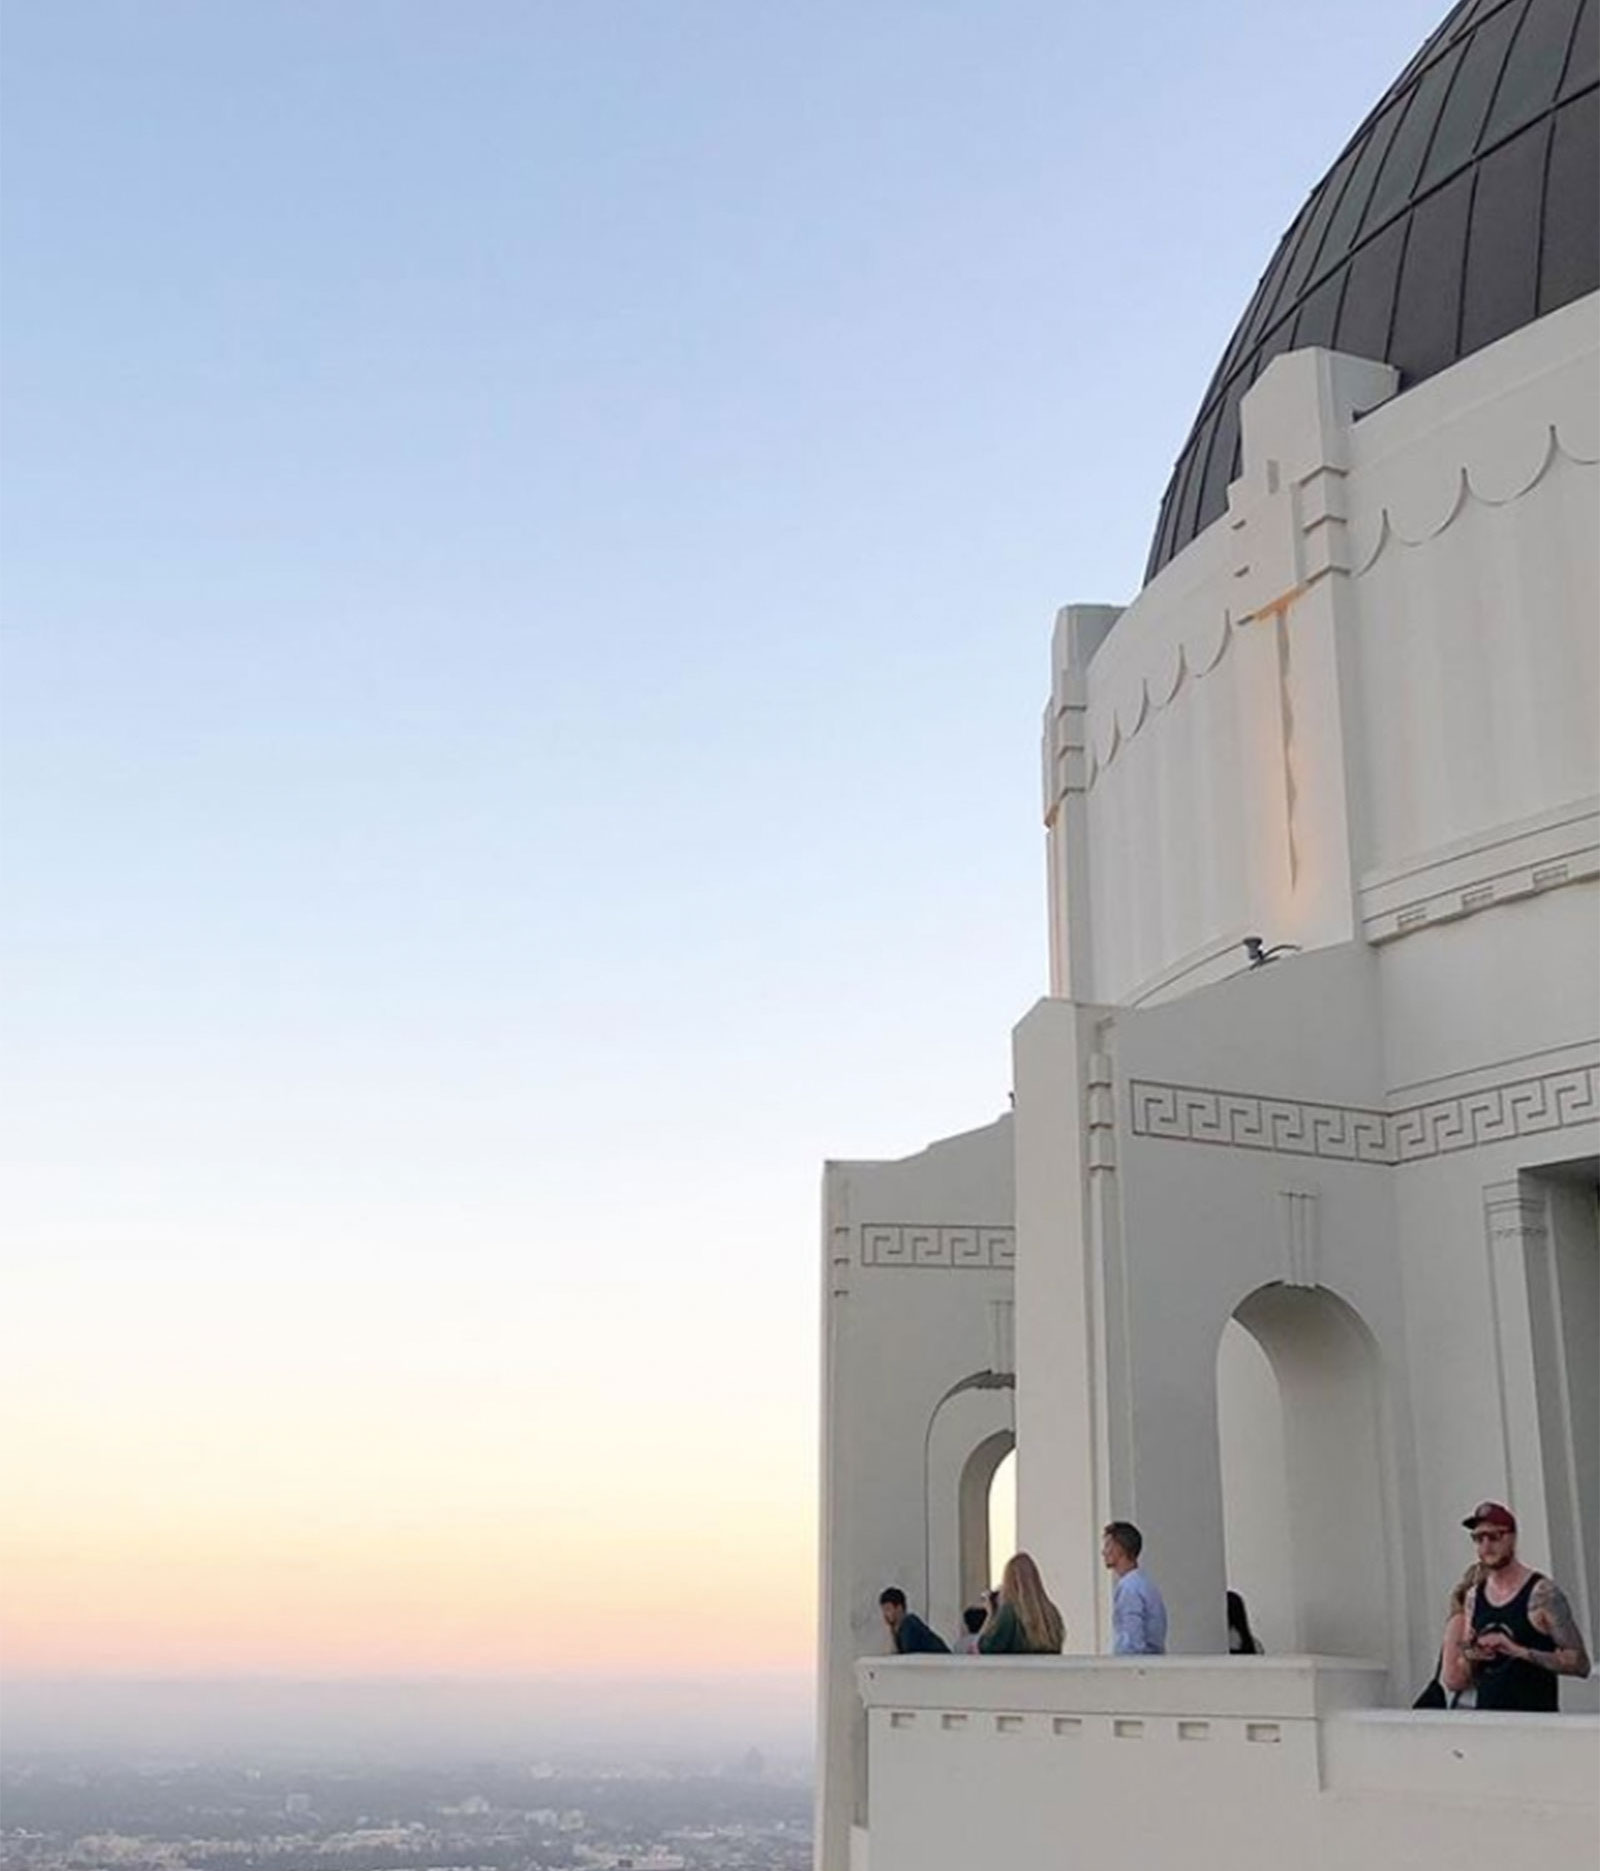 The_Griffith_Observatory_he_Ink_Collective_Pret-a-Partir_Los_Angeles_3 copy.jpg